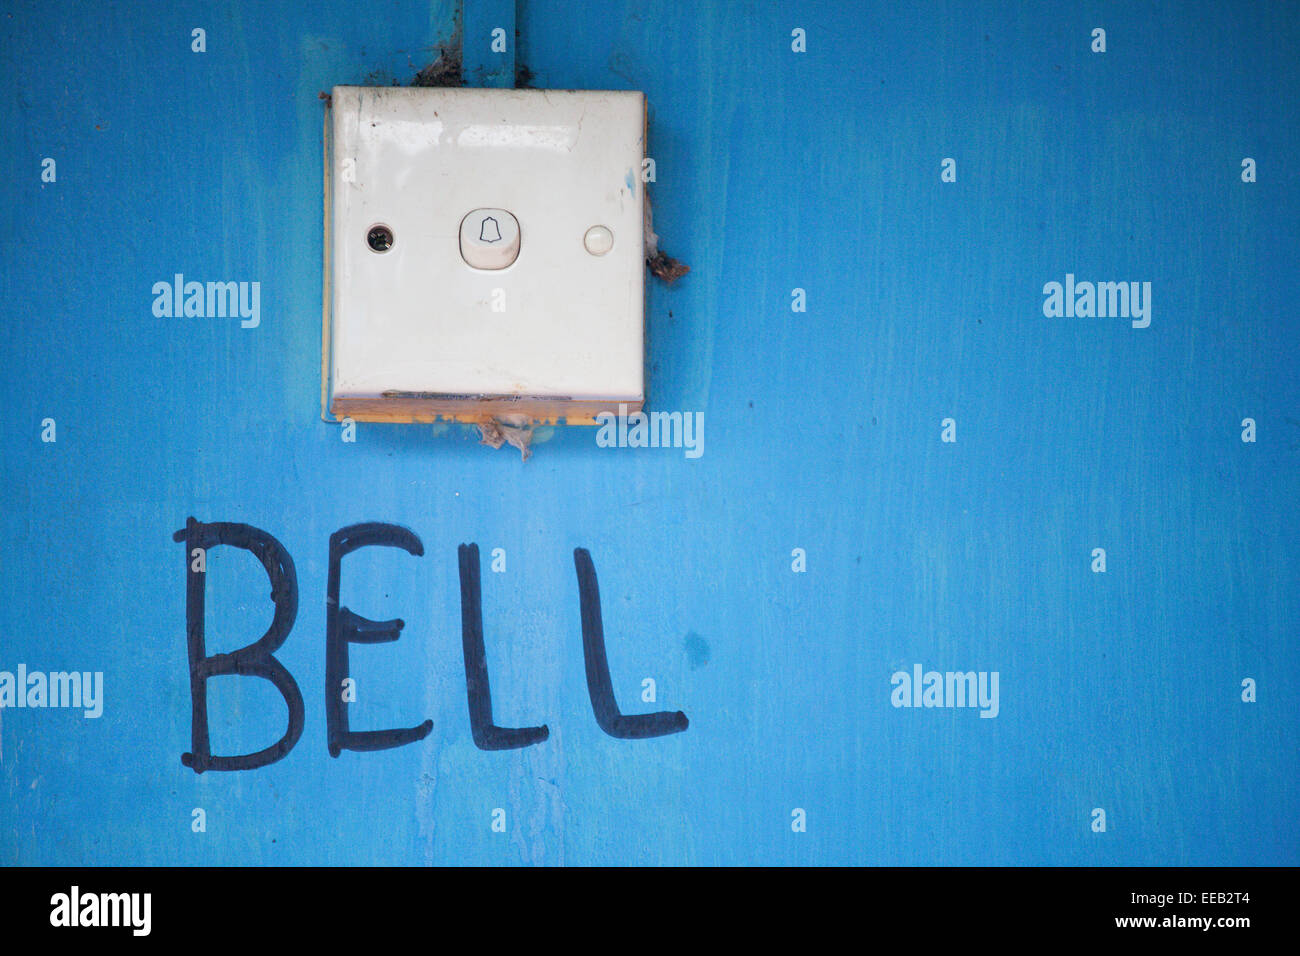 BELL SWITCH ON WALL - Stock Image